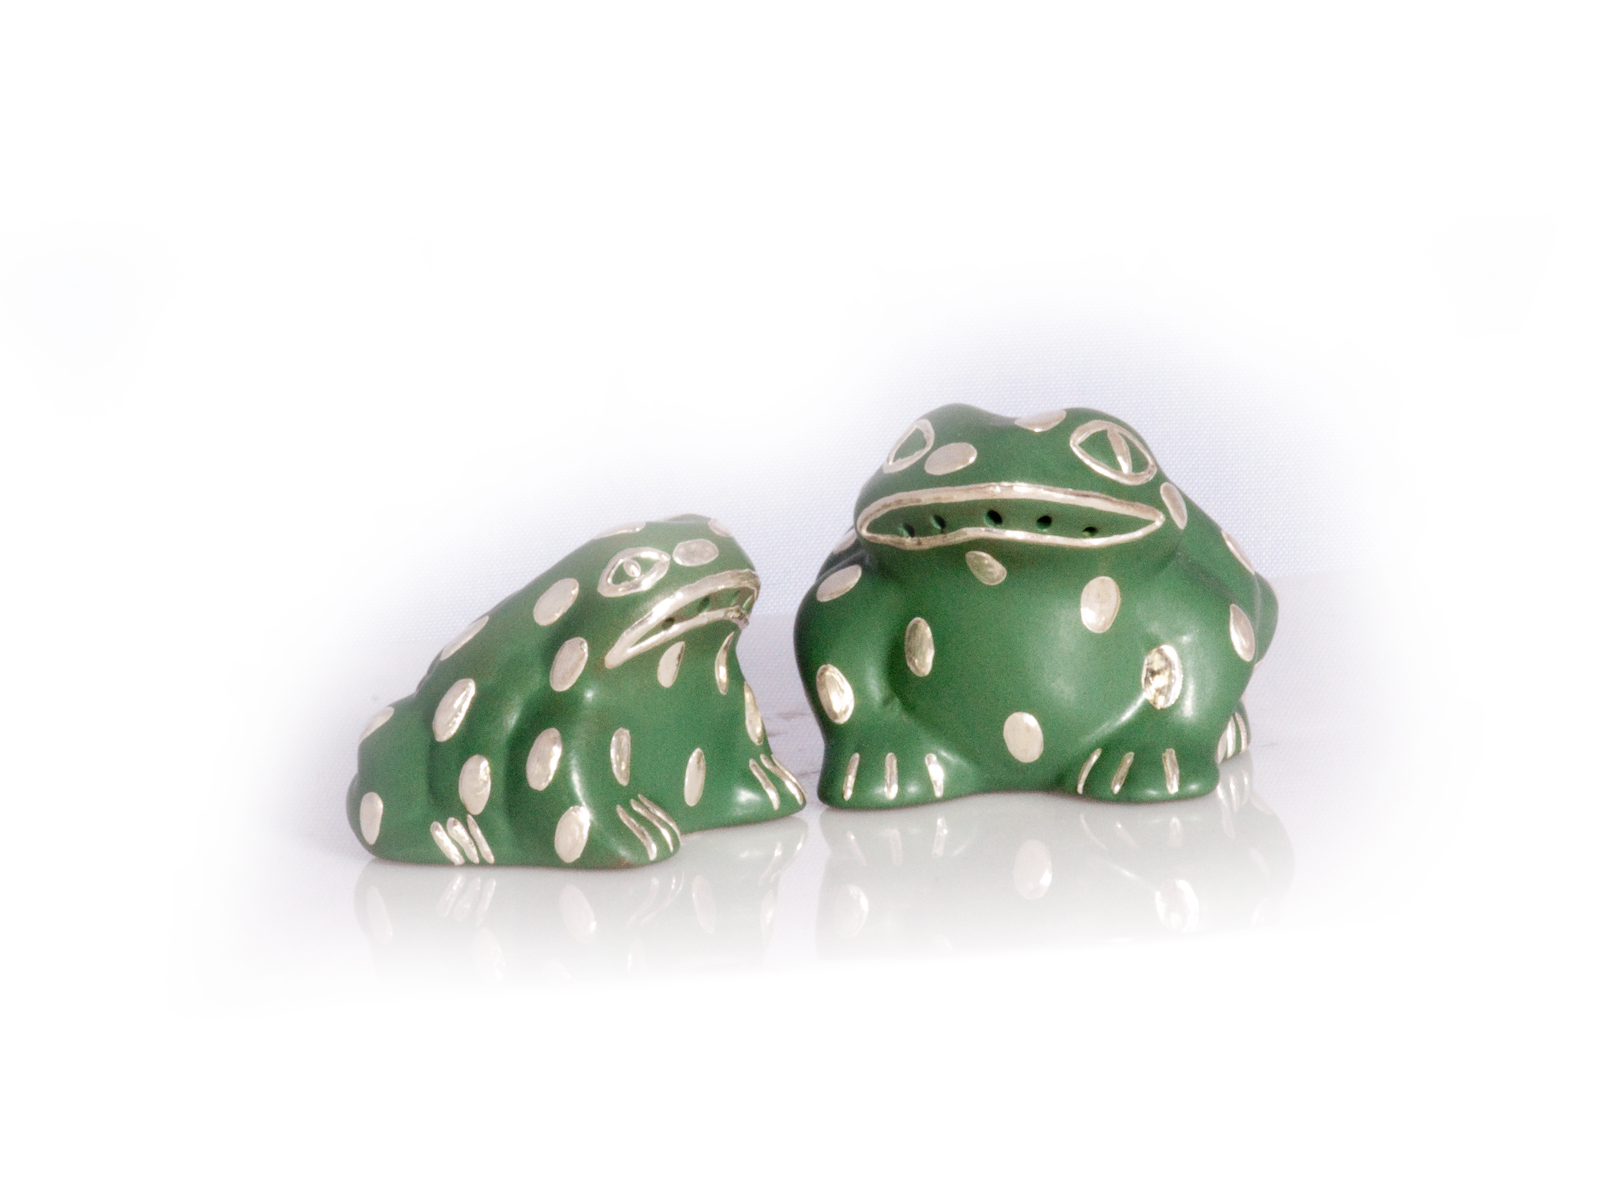 Green Frog Salt Pepper Shakers